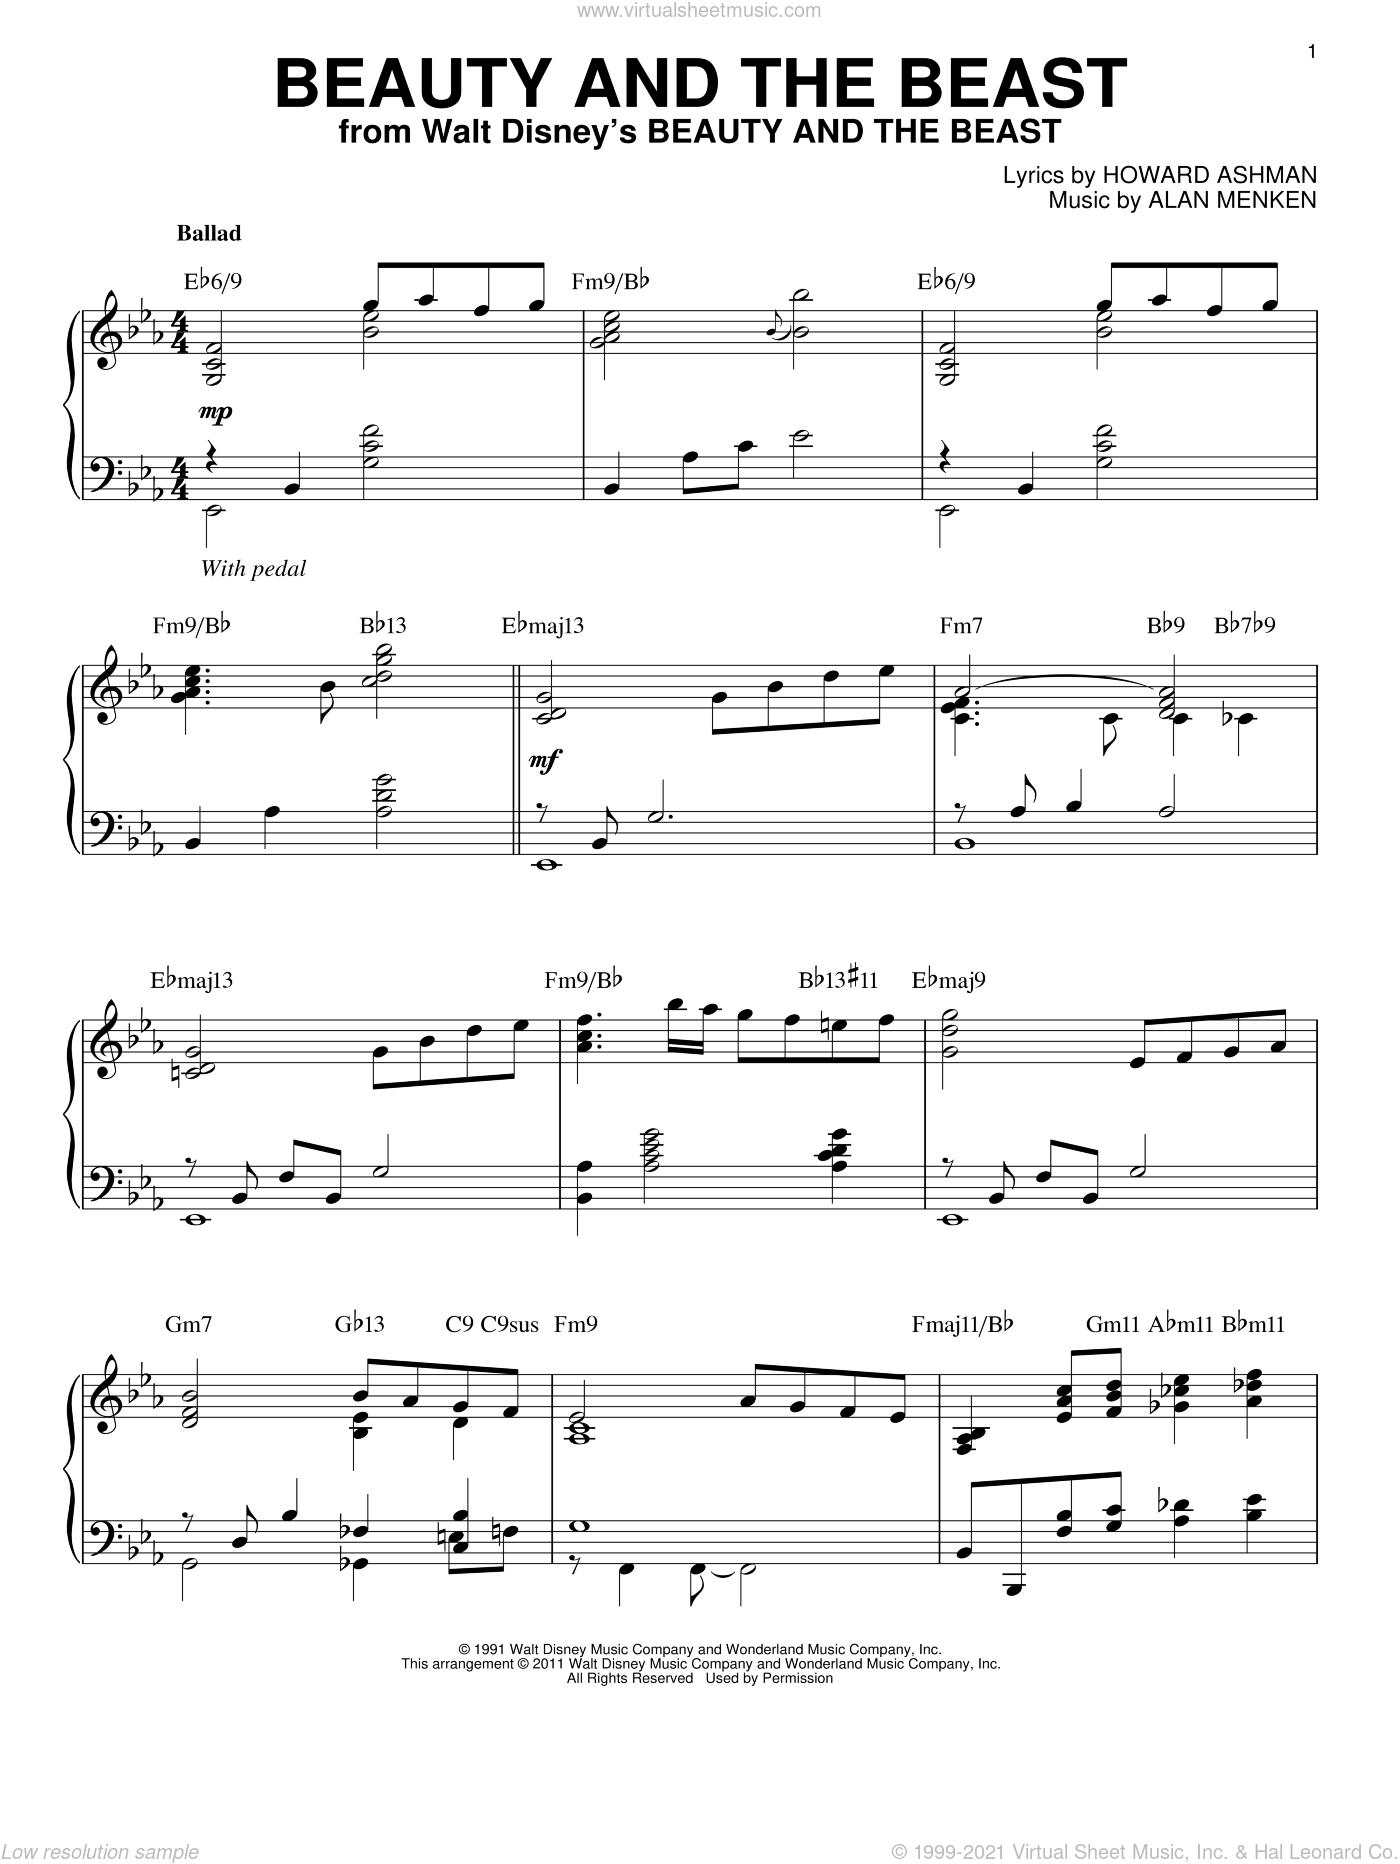 Beauty And The Beast [Jazz version] (arr. Brent Edstrom) sheet music for piano solo by Alan Menken, Celine Dion & Peabo Bryson and Howard Ashman, intermediate skill level